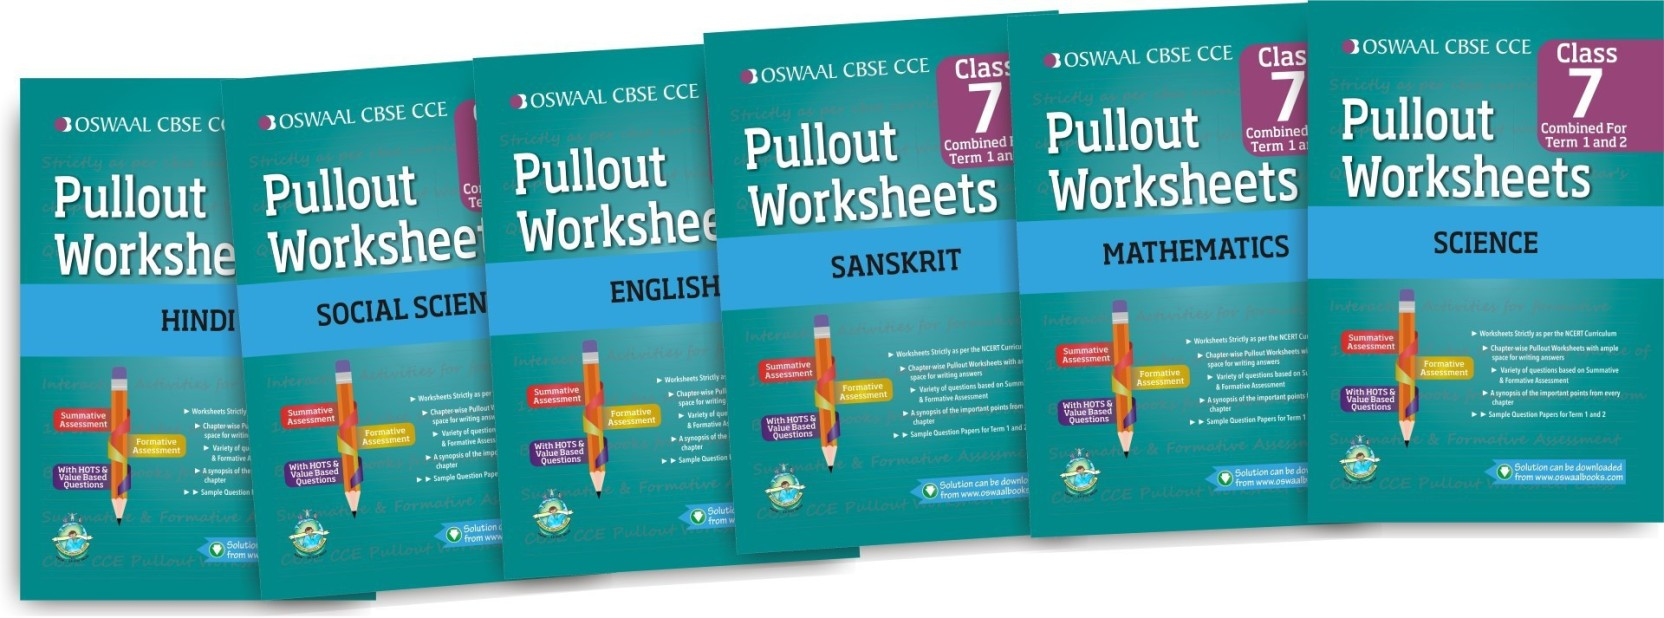 Oswaal CBSE CCE Pullout Worksheet Hindi, English, Math, Science ...